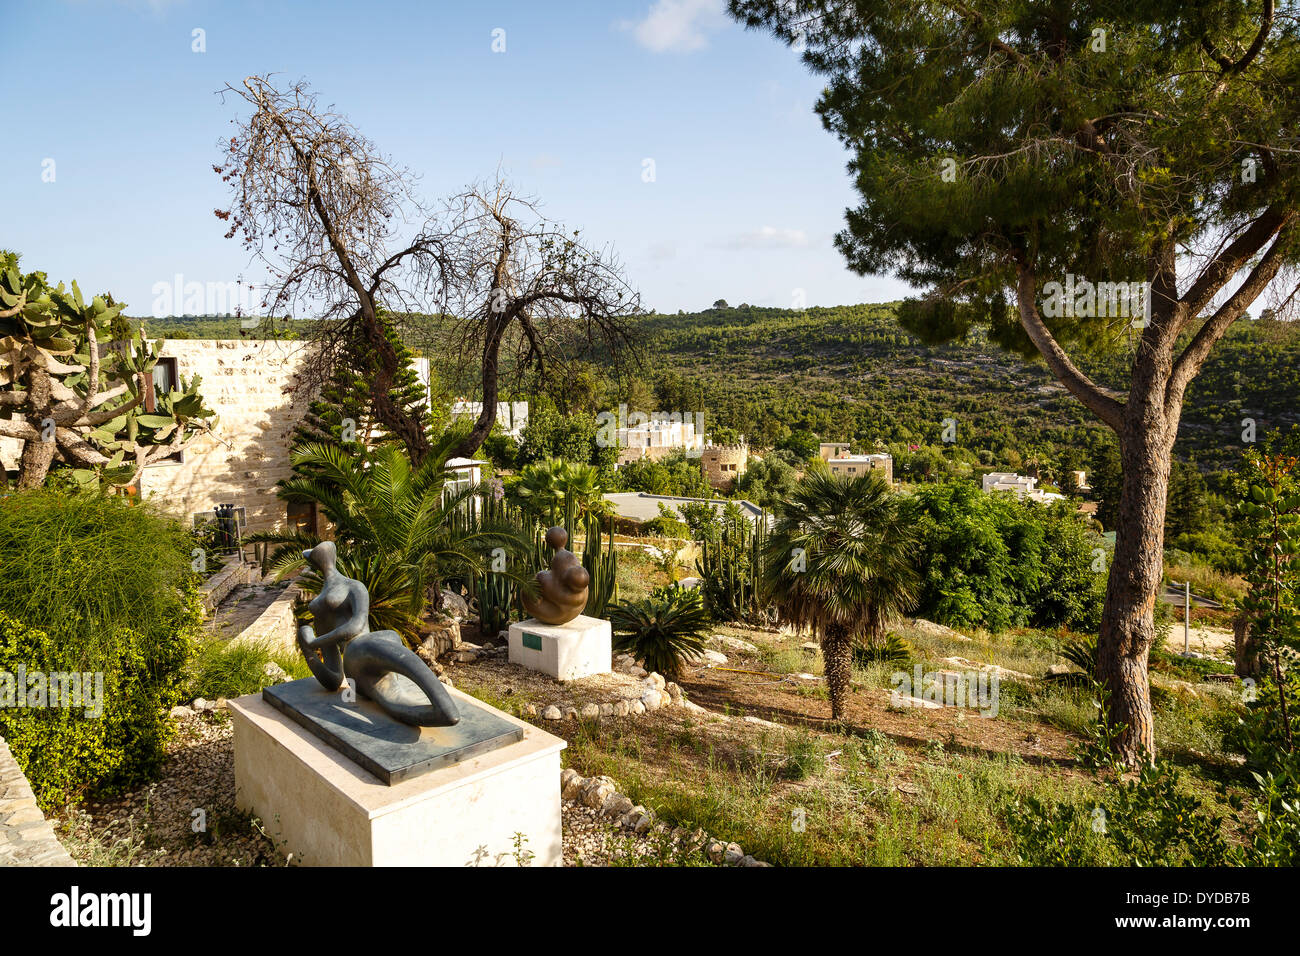 The artists village of Ein Hod, Carmel mountains, Israel - Stock Image